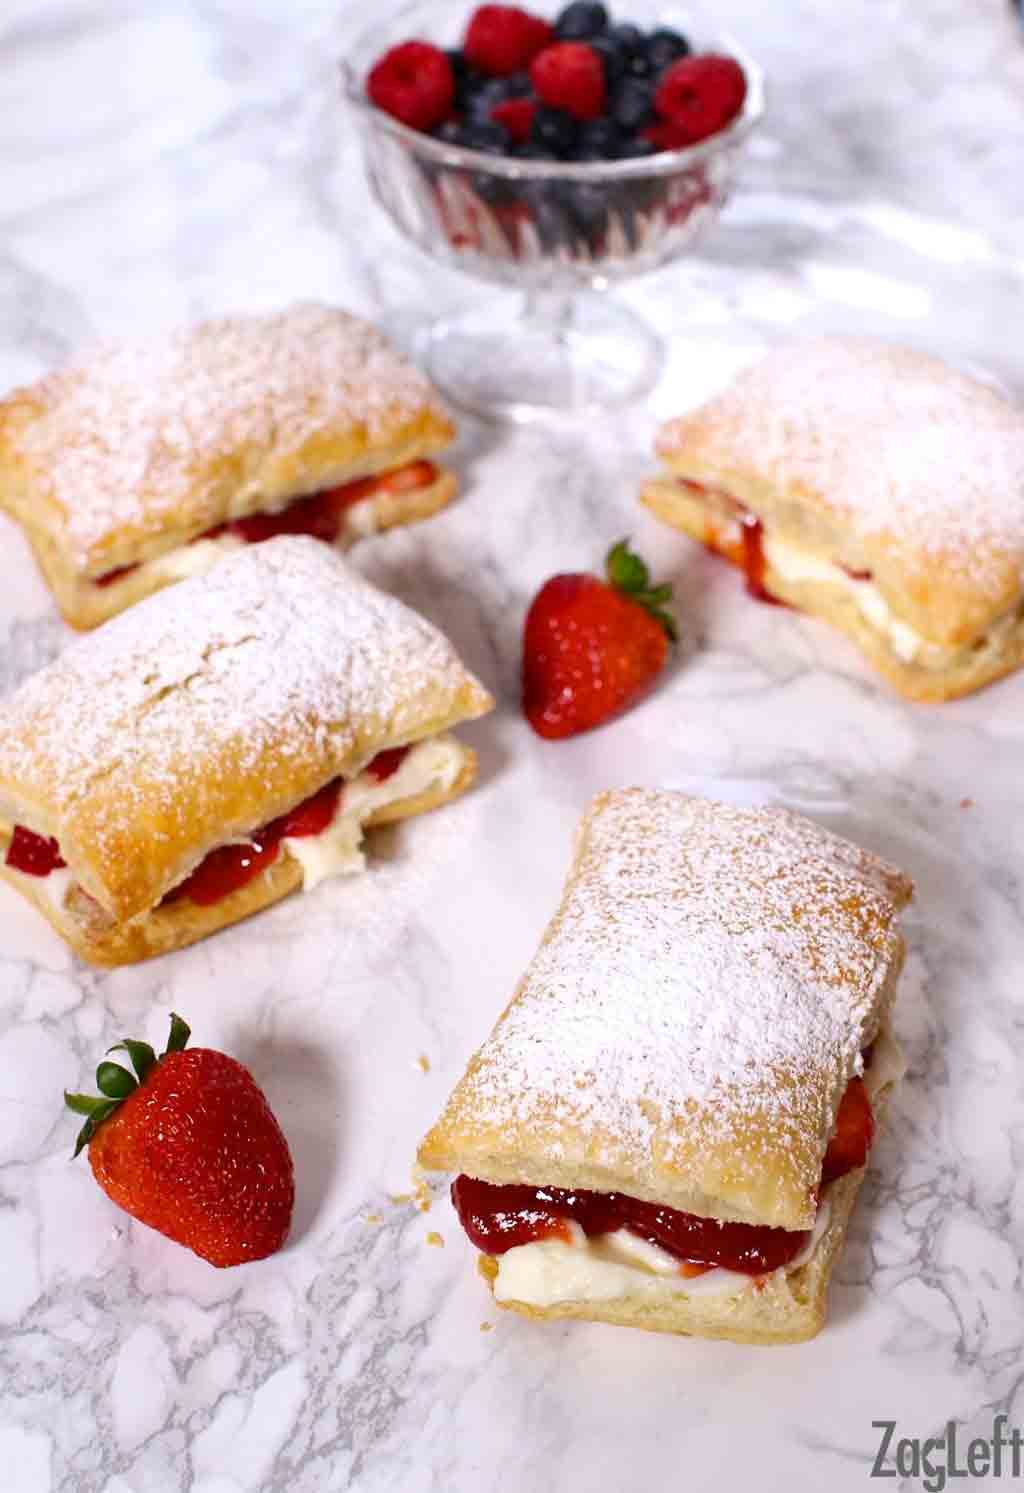 Light and flaky puff pastry, fresh strawberries, a creamy no-bake cheesecake filling, and a sweet strawberry sauce come together to make these quick and easy Strawberry Cheesecake Puffs...